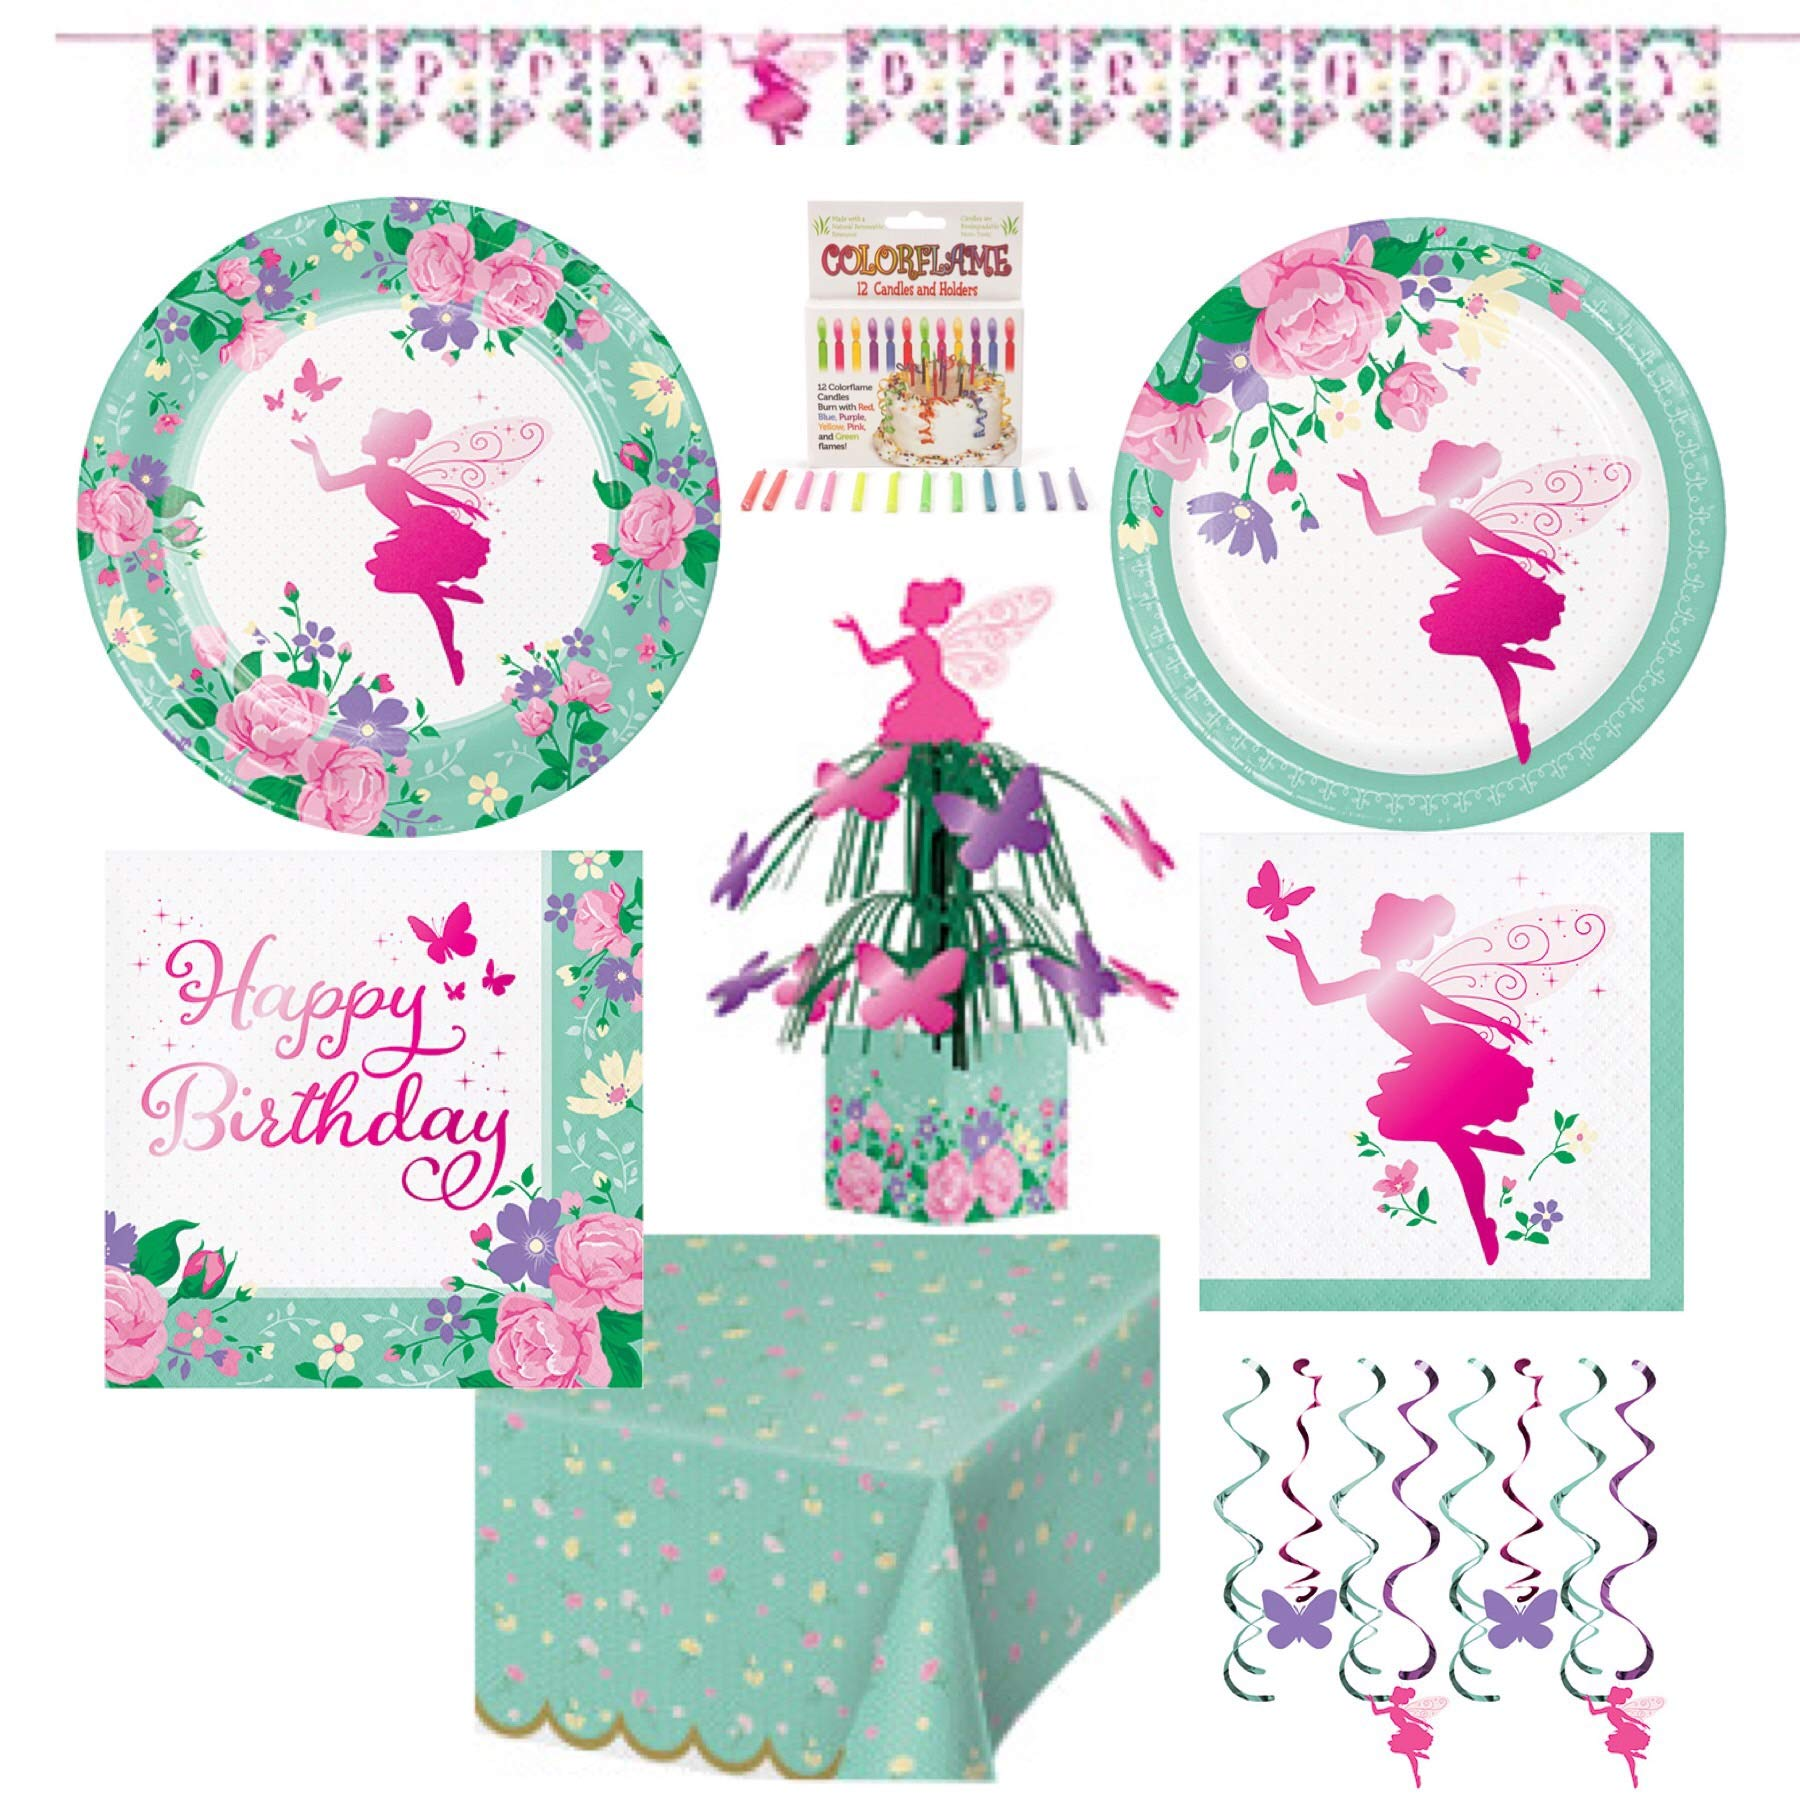 Olive Occasions Fairy Happy Birthday Party Supplies 16 Dinner Plates, 16 Cake Plates, 16 Lunch Napkins, 16 Beverage Napkins, Dizzy Danglers, Table Cover, Centerpiece, Banner. 12 Candles and Recipe